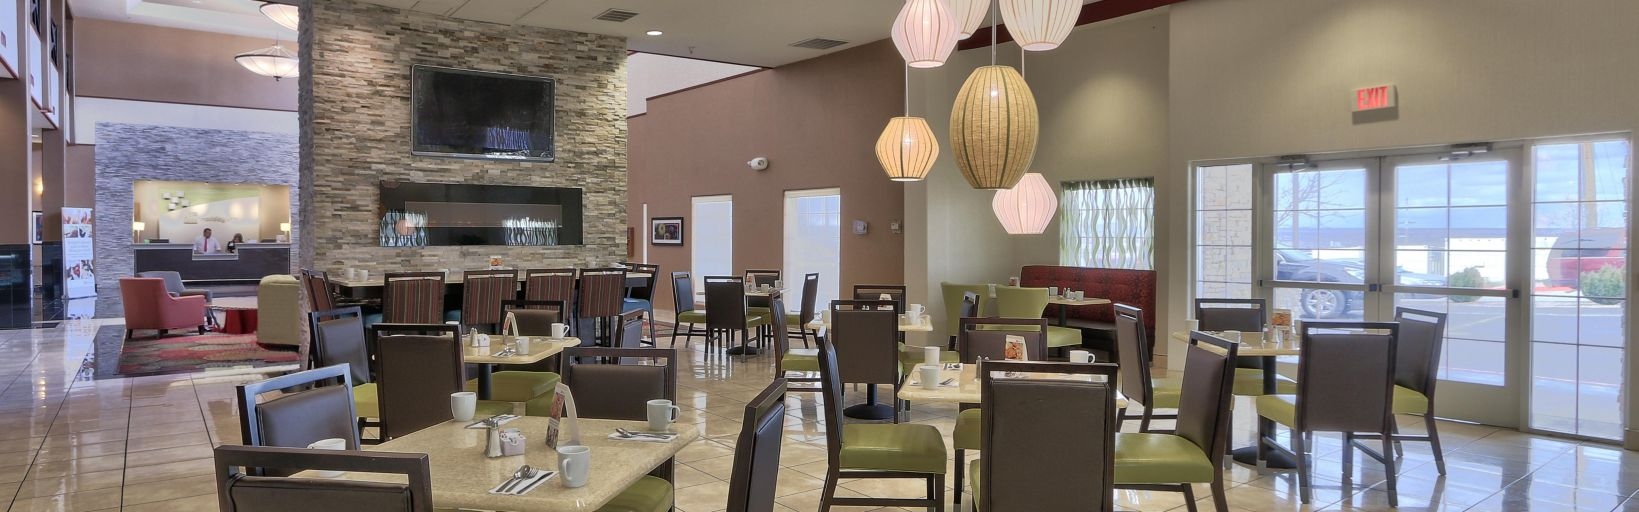 Sunport Grille At The Holiday Inn Suites Albuquerque Airport